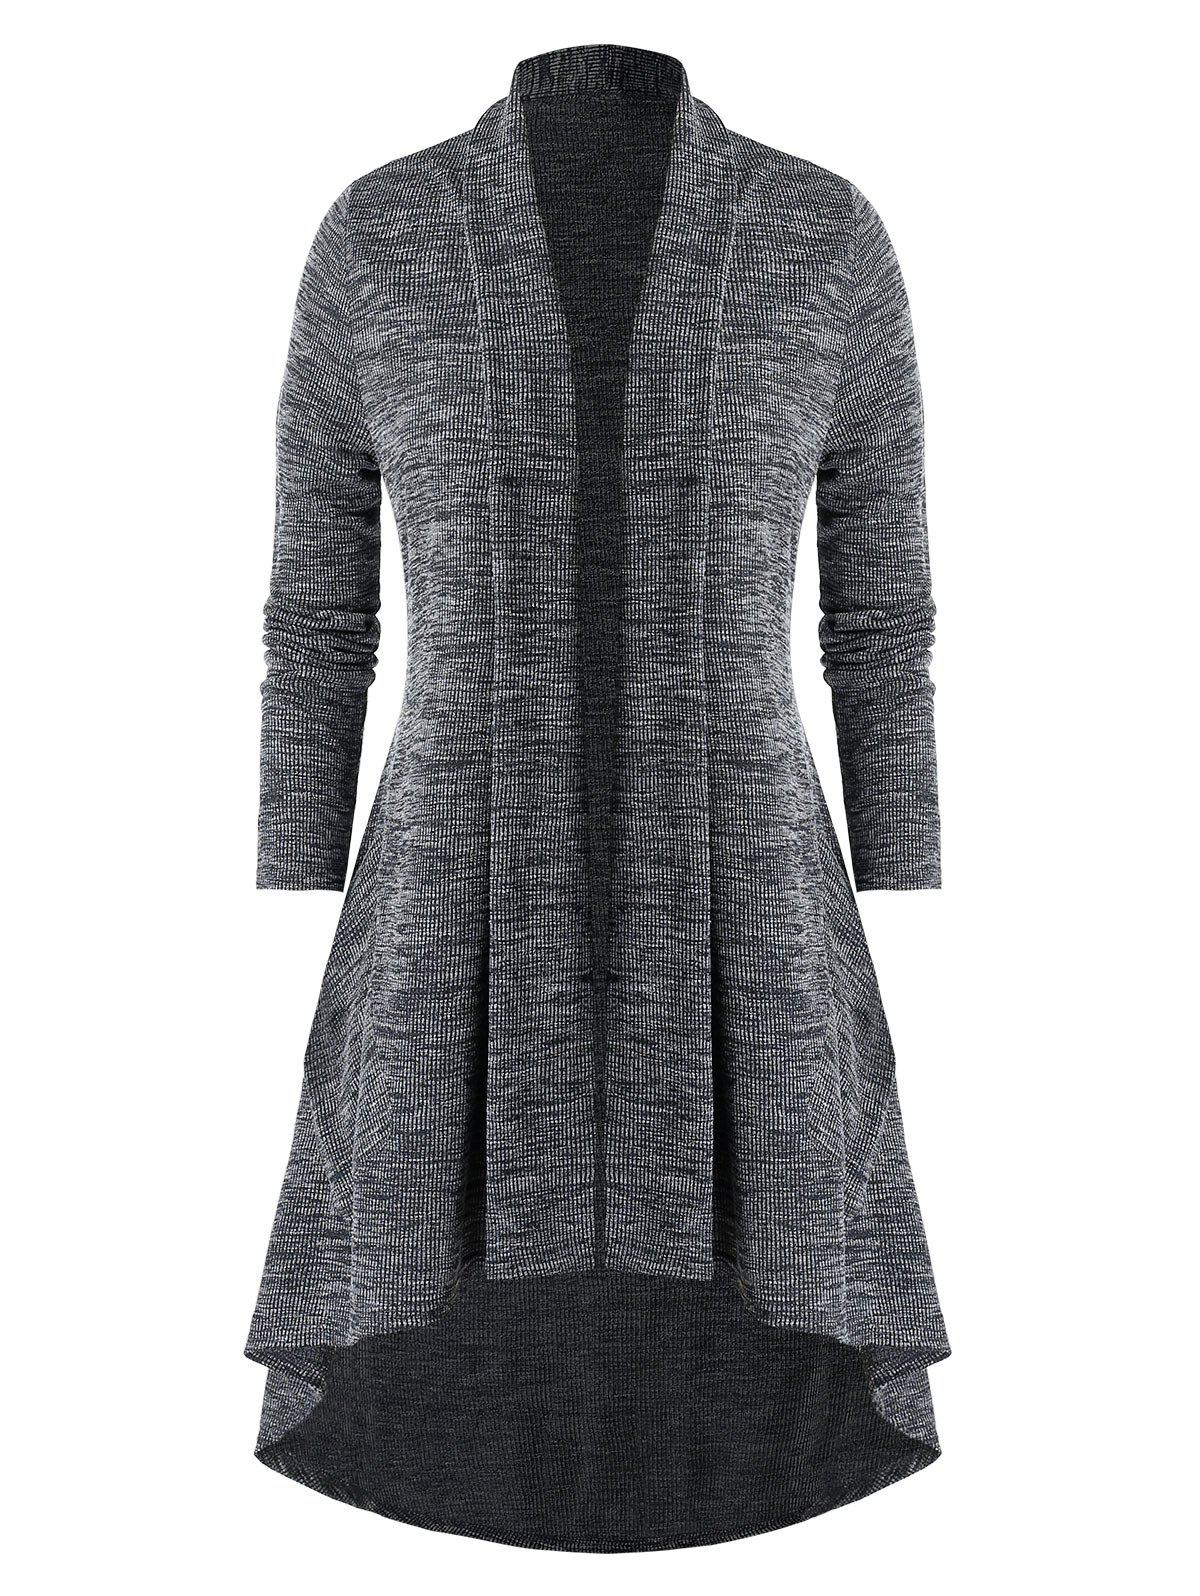 Plus Size Shawl Collar Open Front High Low Cardigan - CARBON GRAY 3X